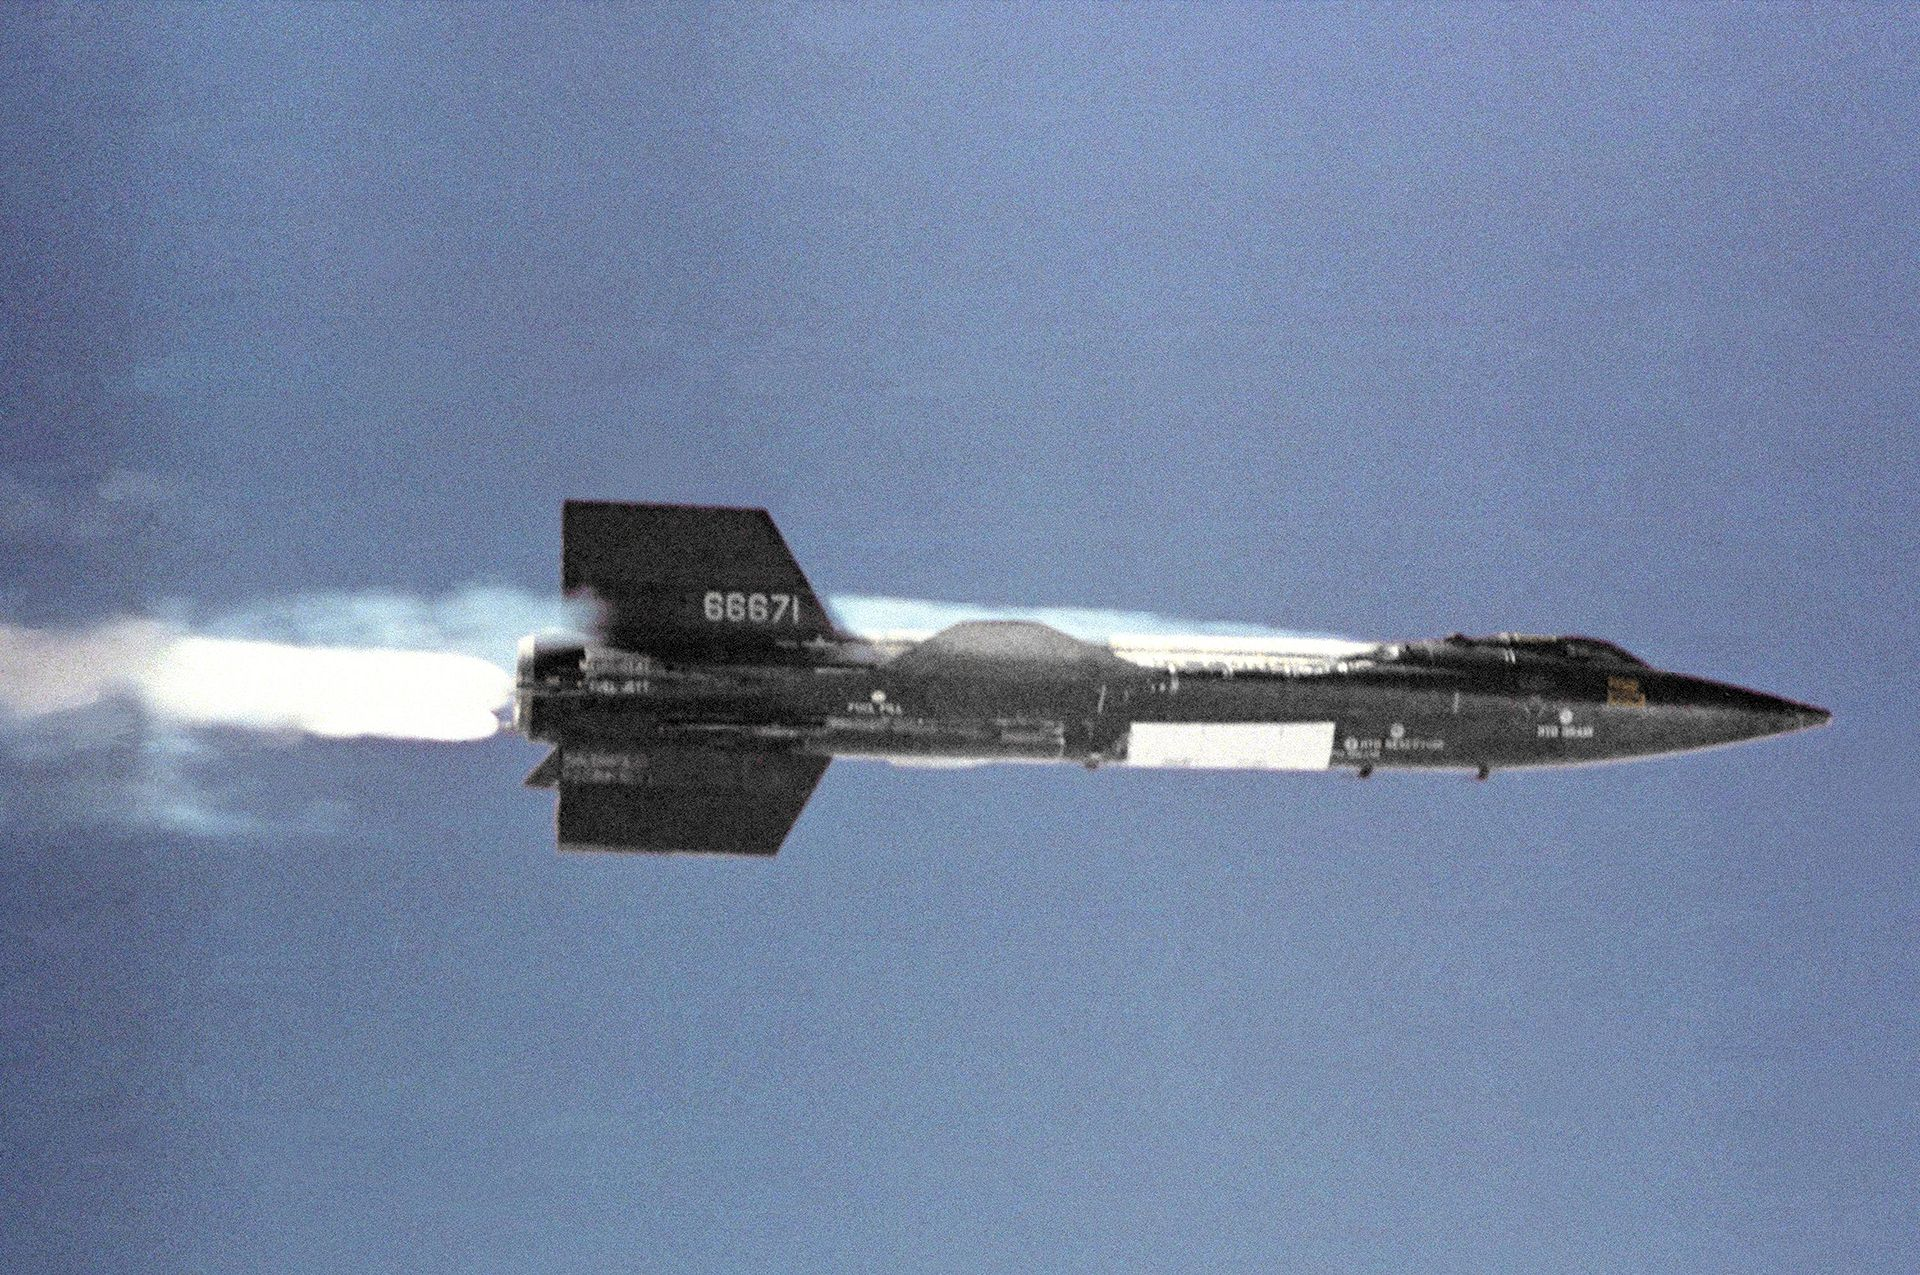 Fastest Plane In The World >> The Fastest Rocket Plane In The World X 15 Migflug Com Blog